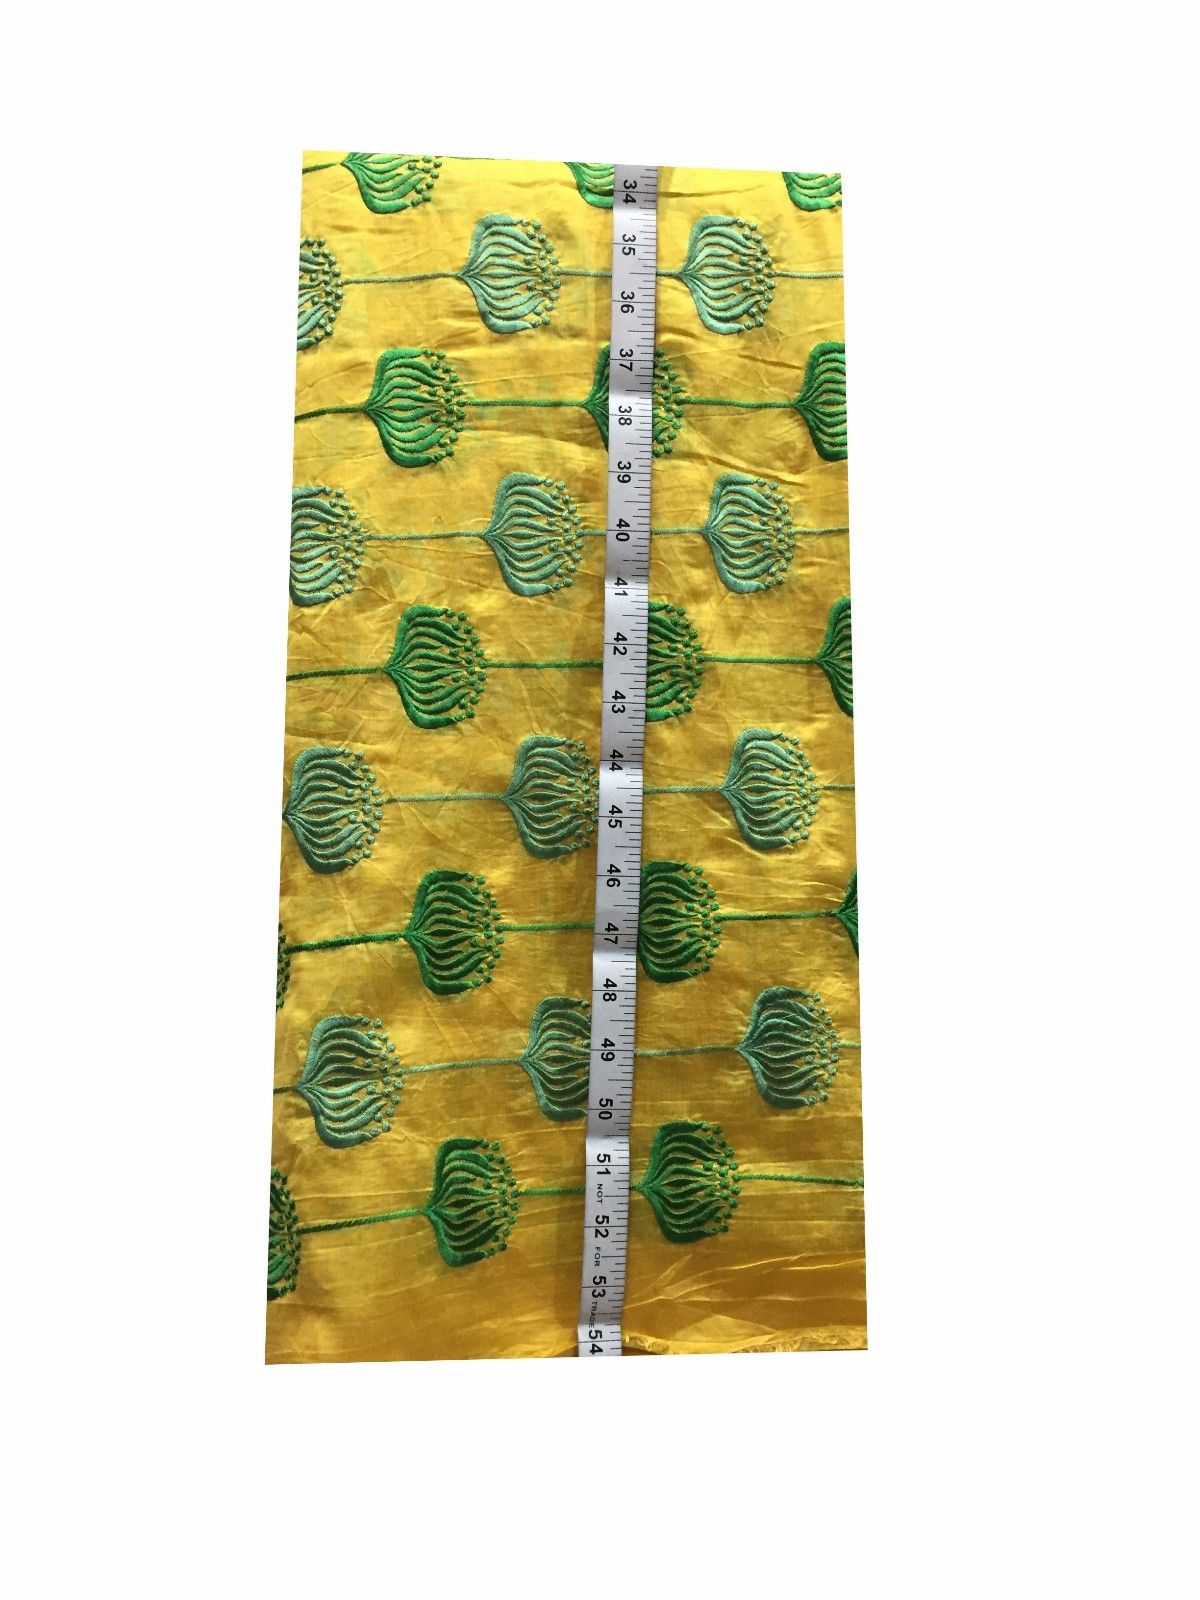 fabric shop online india cloth material online india Embroidered Chanderi Silk Yellow, Green 44 inches Wide 8090